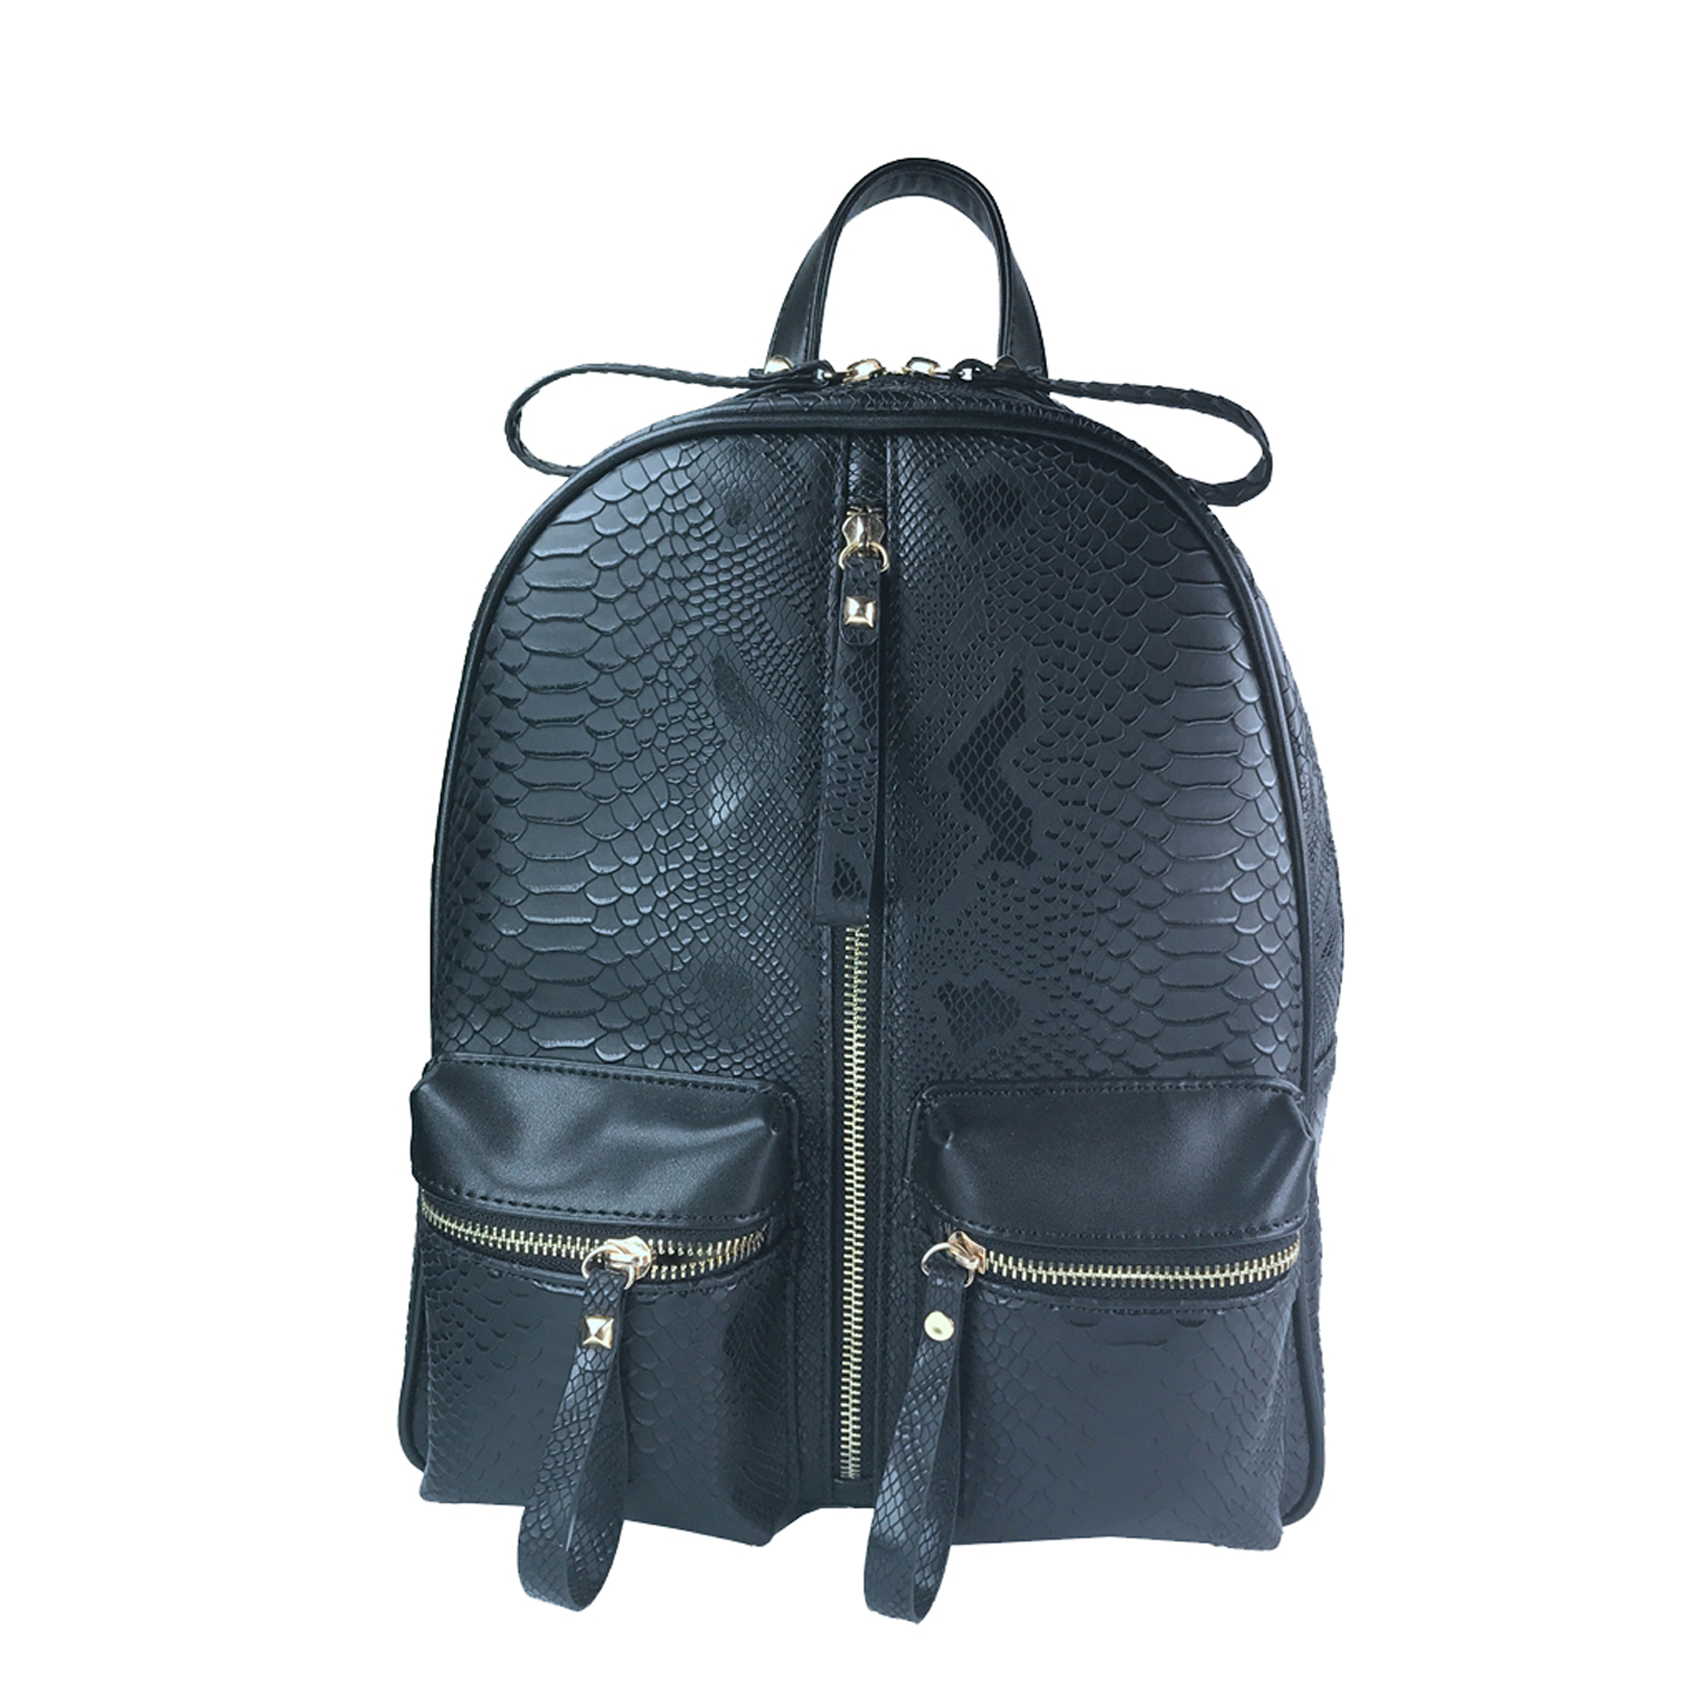 Liquorish Black Faux Snake Skin Backpack (Liquorish/PA)